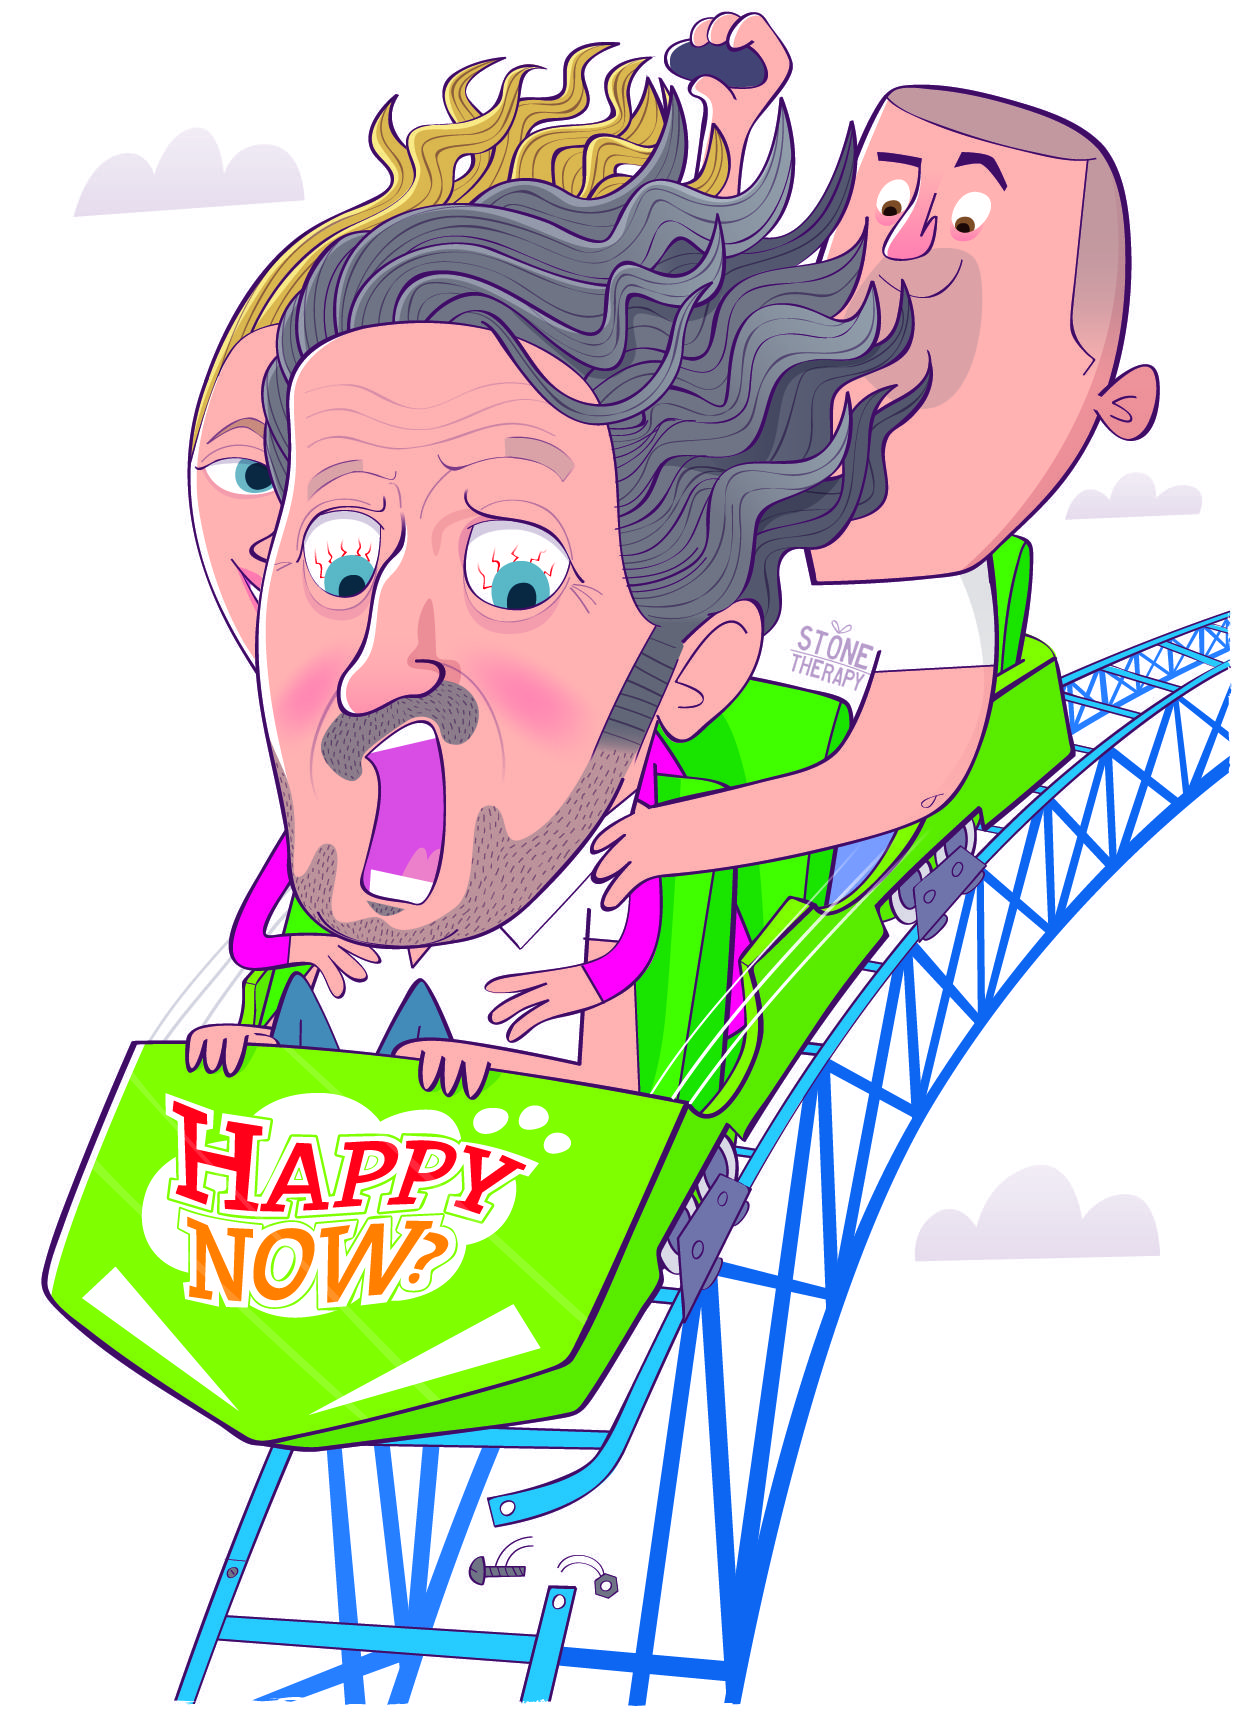 Richard Herring: My joy is spoiled by a wee dilemma